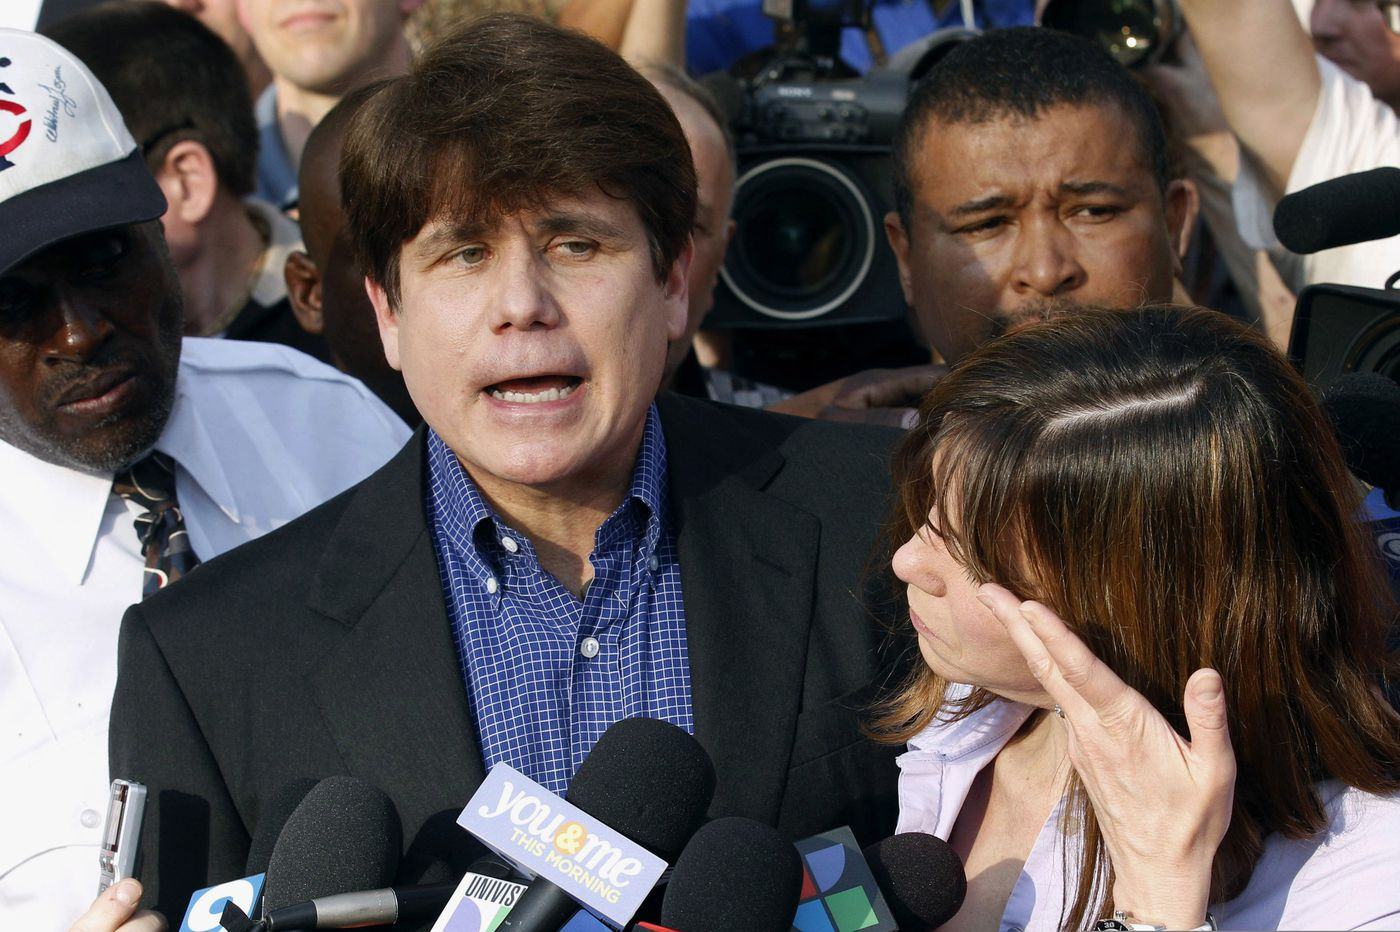 Trump commutes former Illinois Gov. Rod Blagojevich's sentence